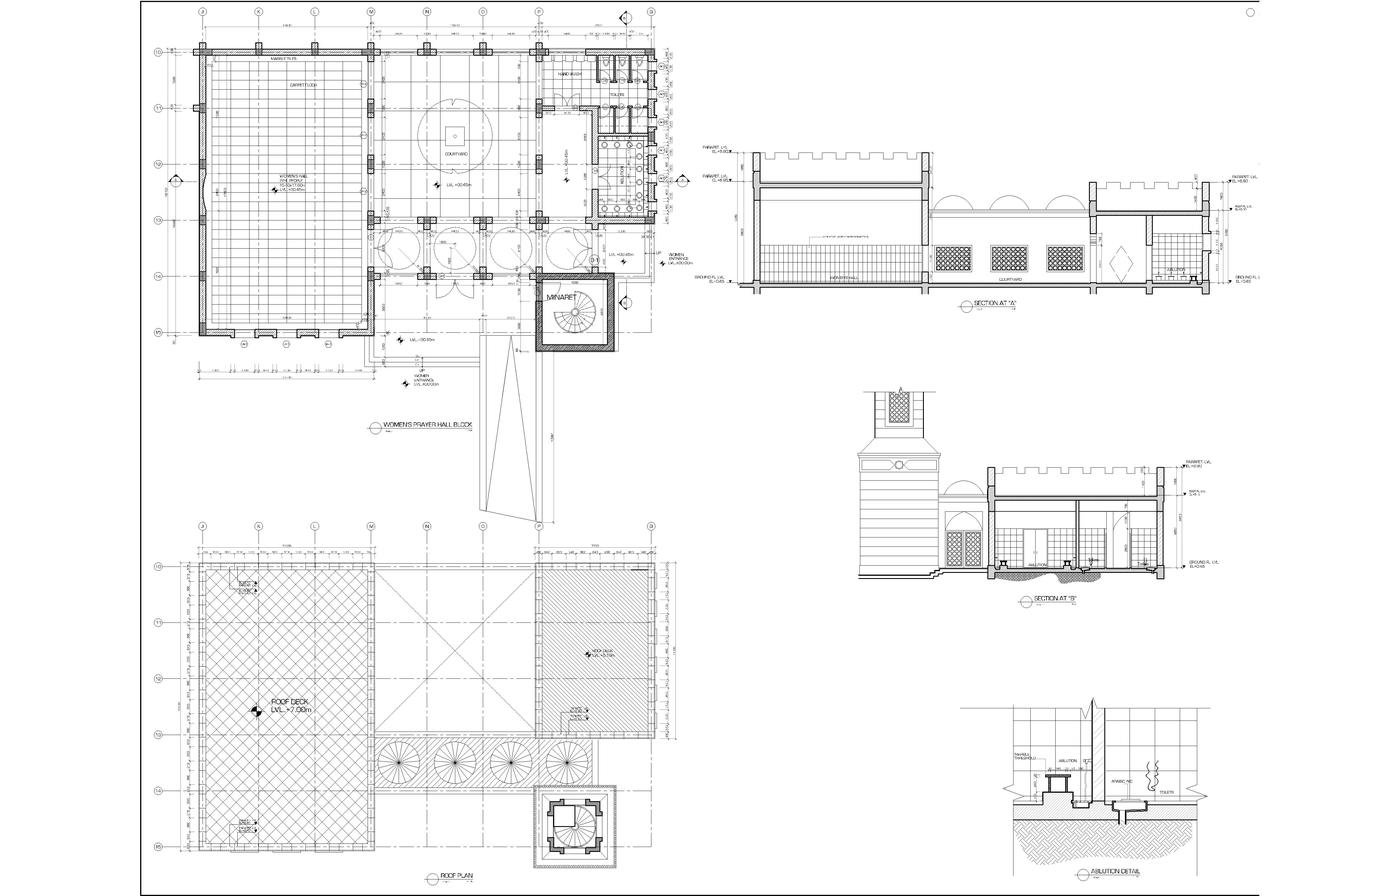 Plan Elevation Section Of Mosque : Architecture drawings by mohammed asim baig at coroflot